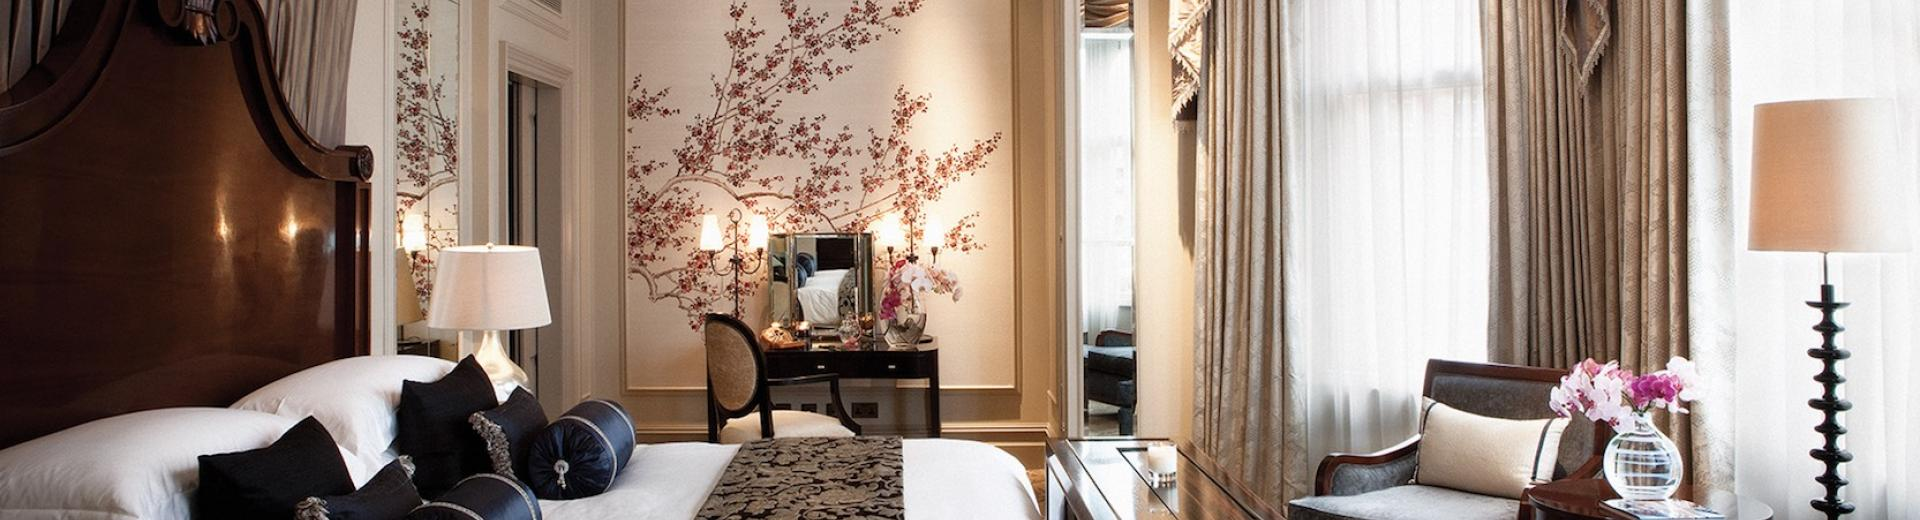 The Vintage Charm of London's Luxury Hotels